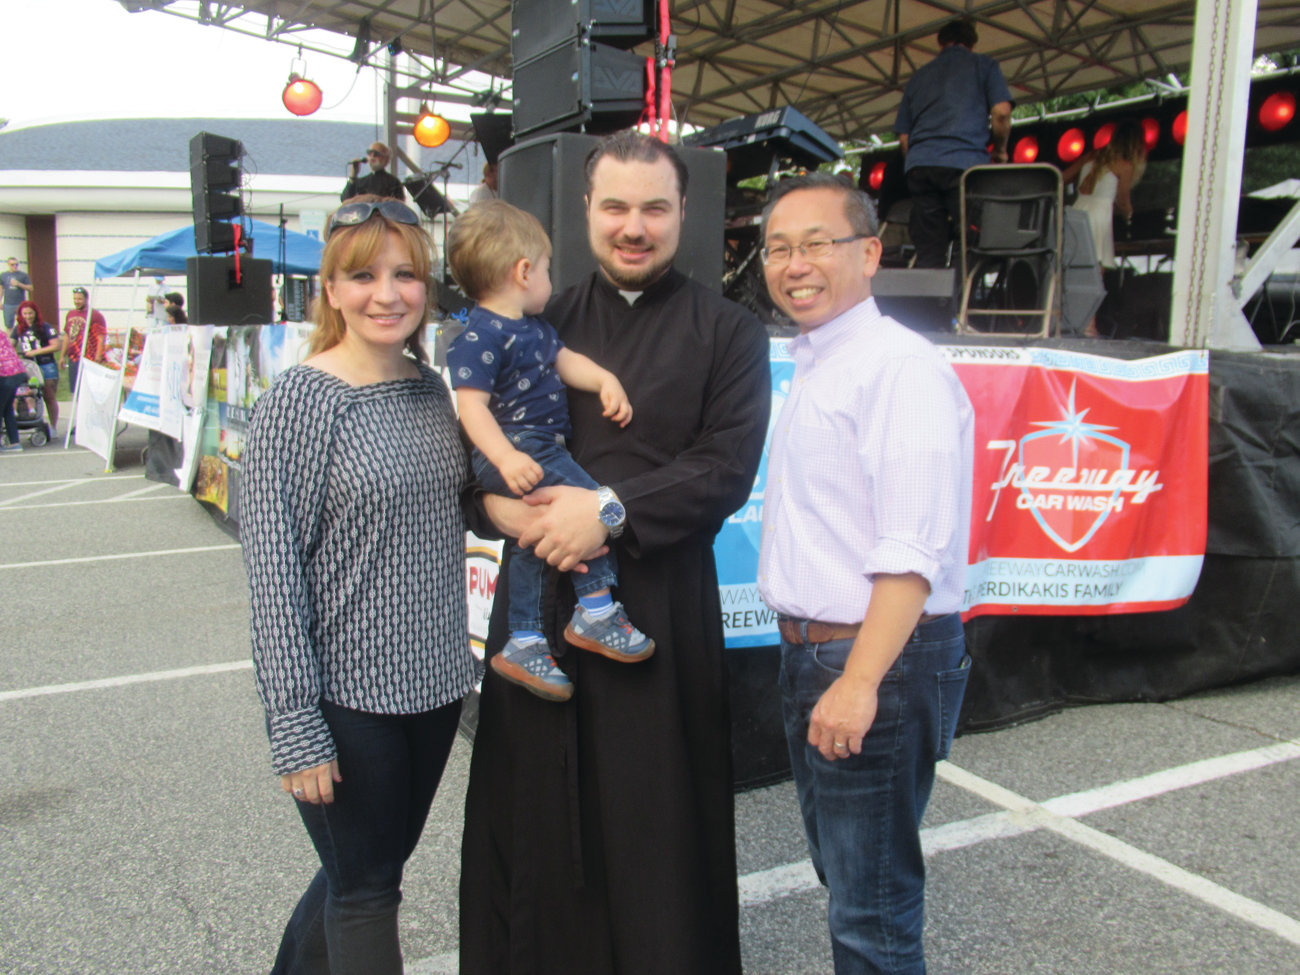 GRAND GUESTS: Father Nicholas Lanzourakis, the new assistant pastor at the Church of the Annunciation, and his son Polydoros greet Barbara Ann Fenton and Mayor Allan Fung during the festival.